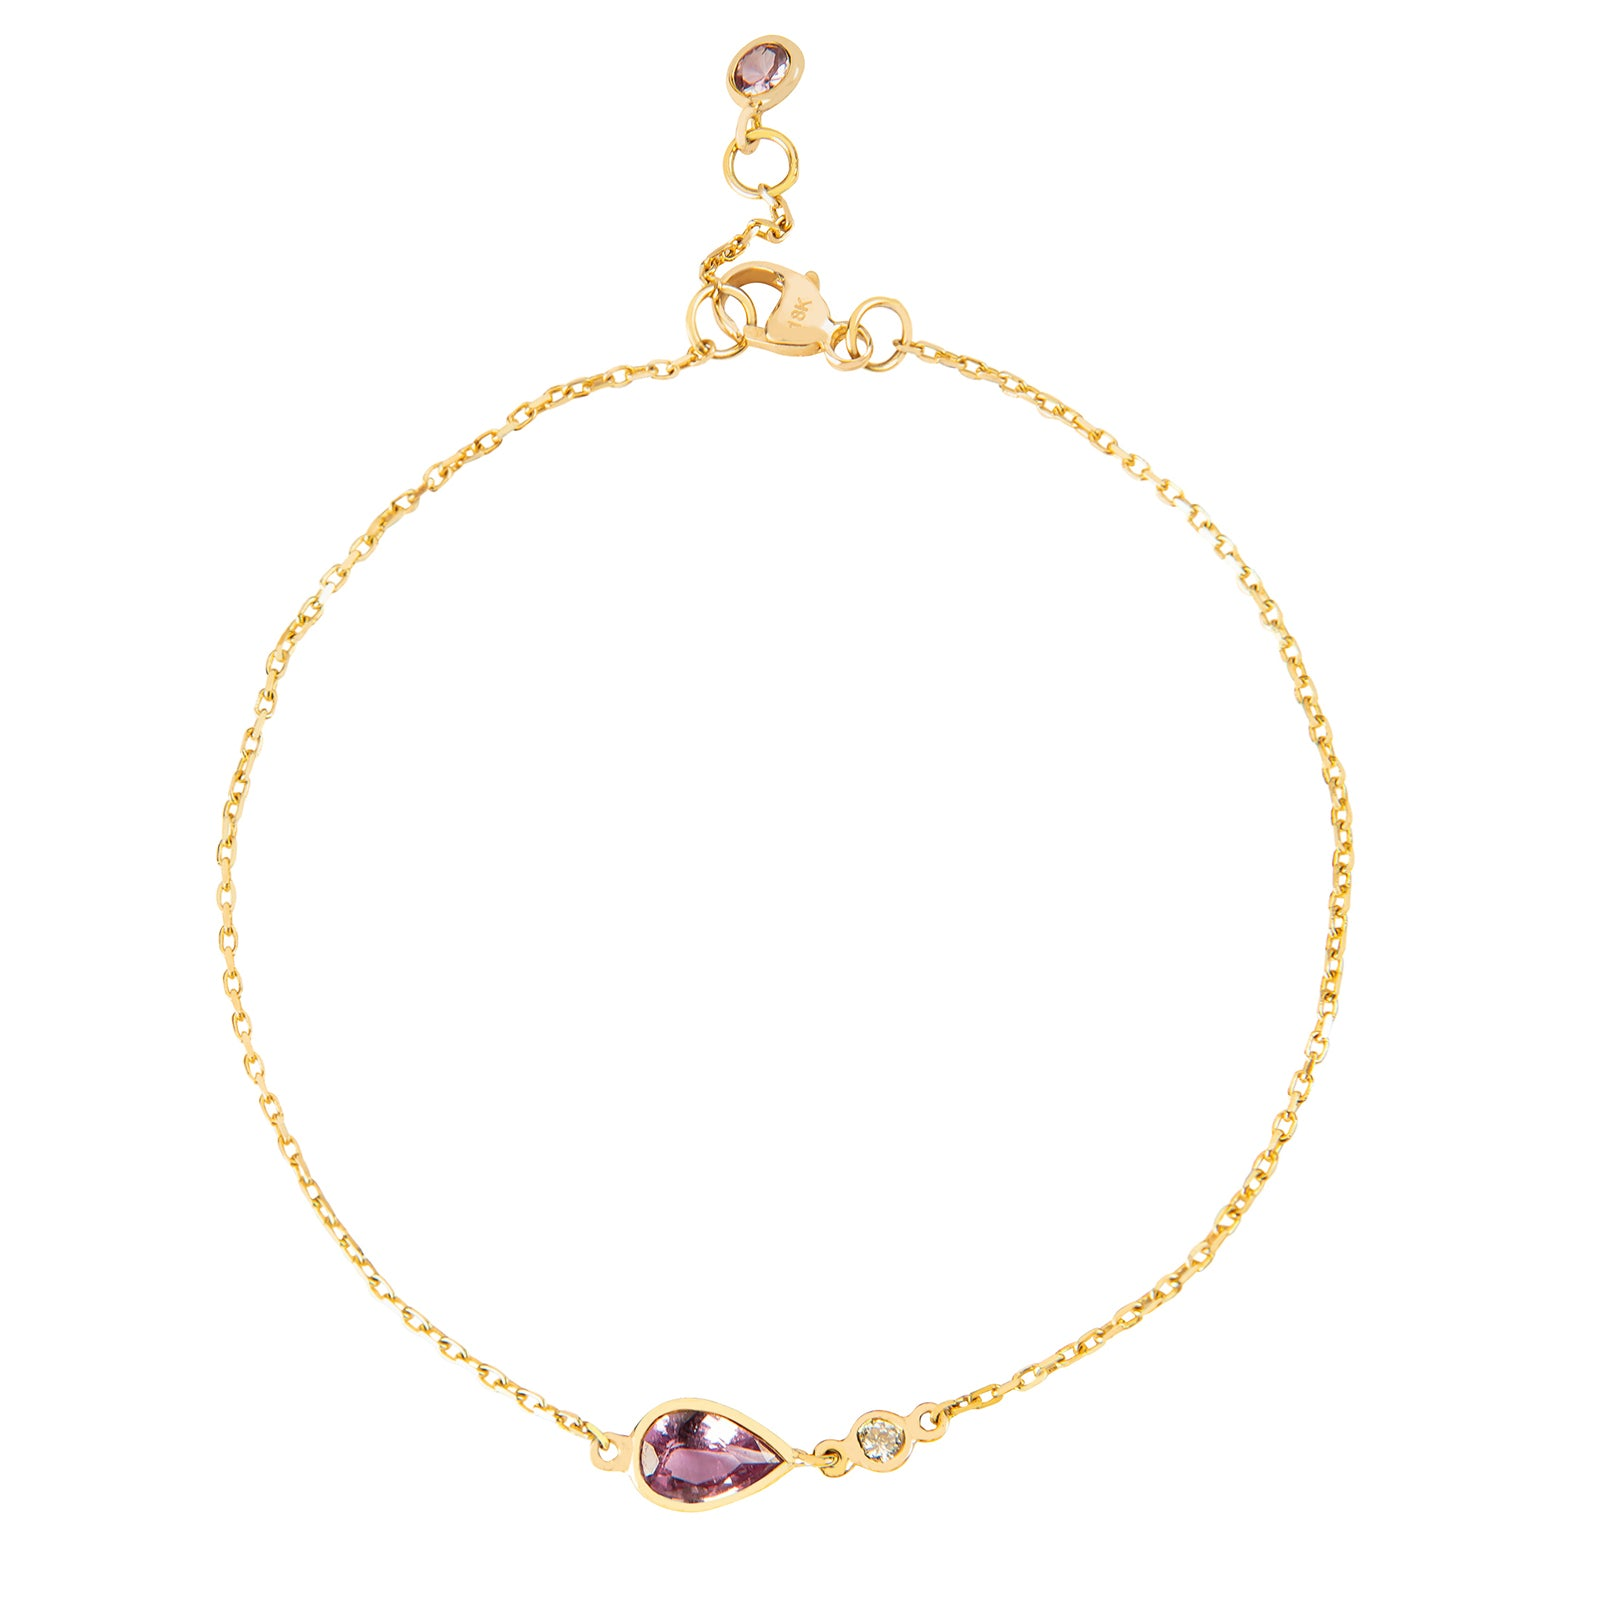 YI Collection Pink Sapphire & Diamond Bracelet - Bracelets - Broken English Jewelry